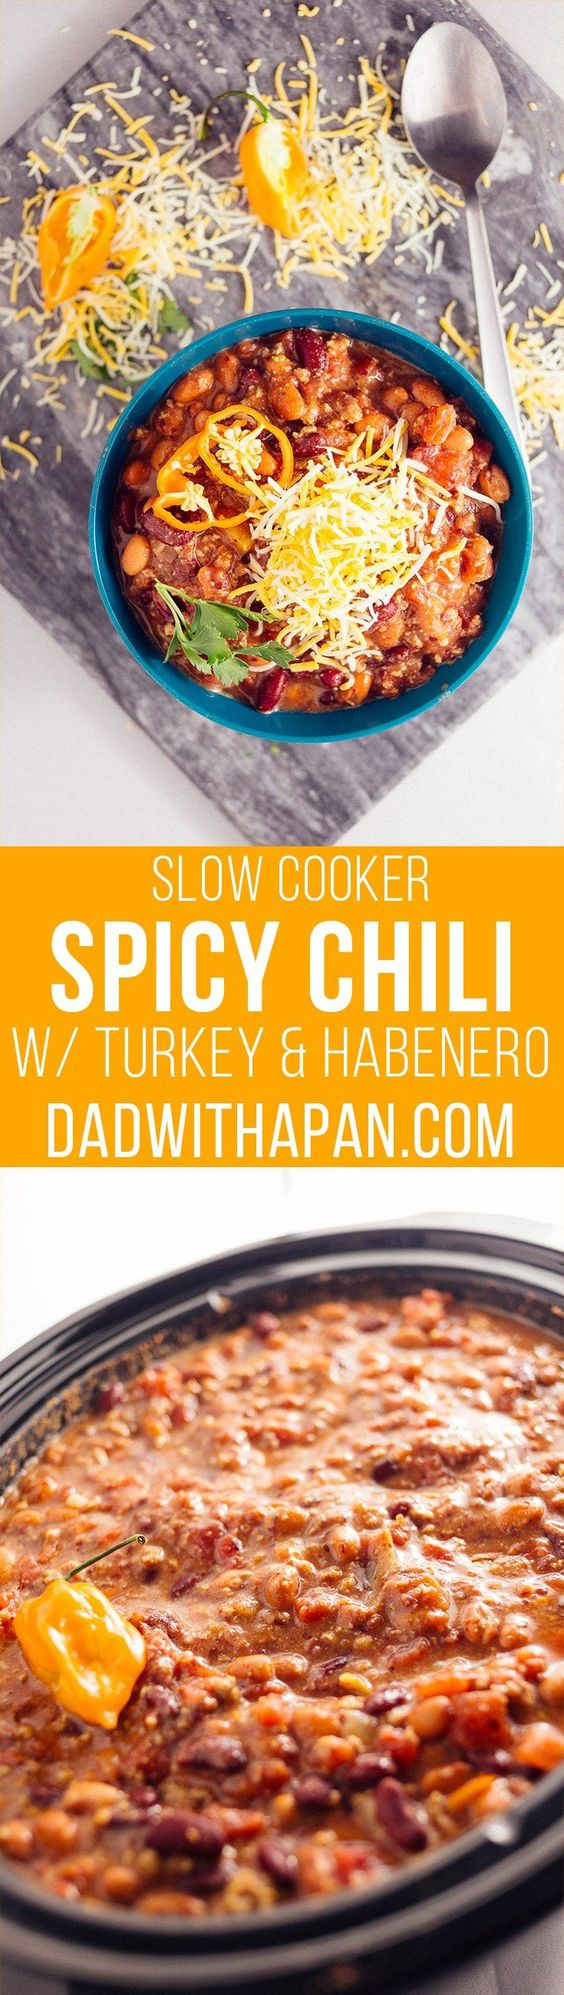 Crock pot chili, Chili and Spicy on Pinterest